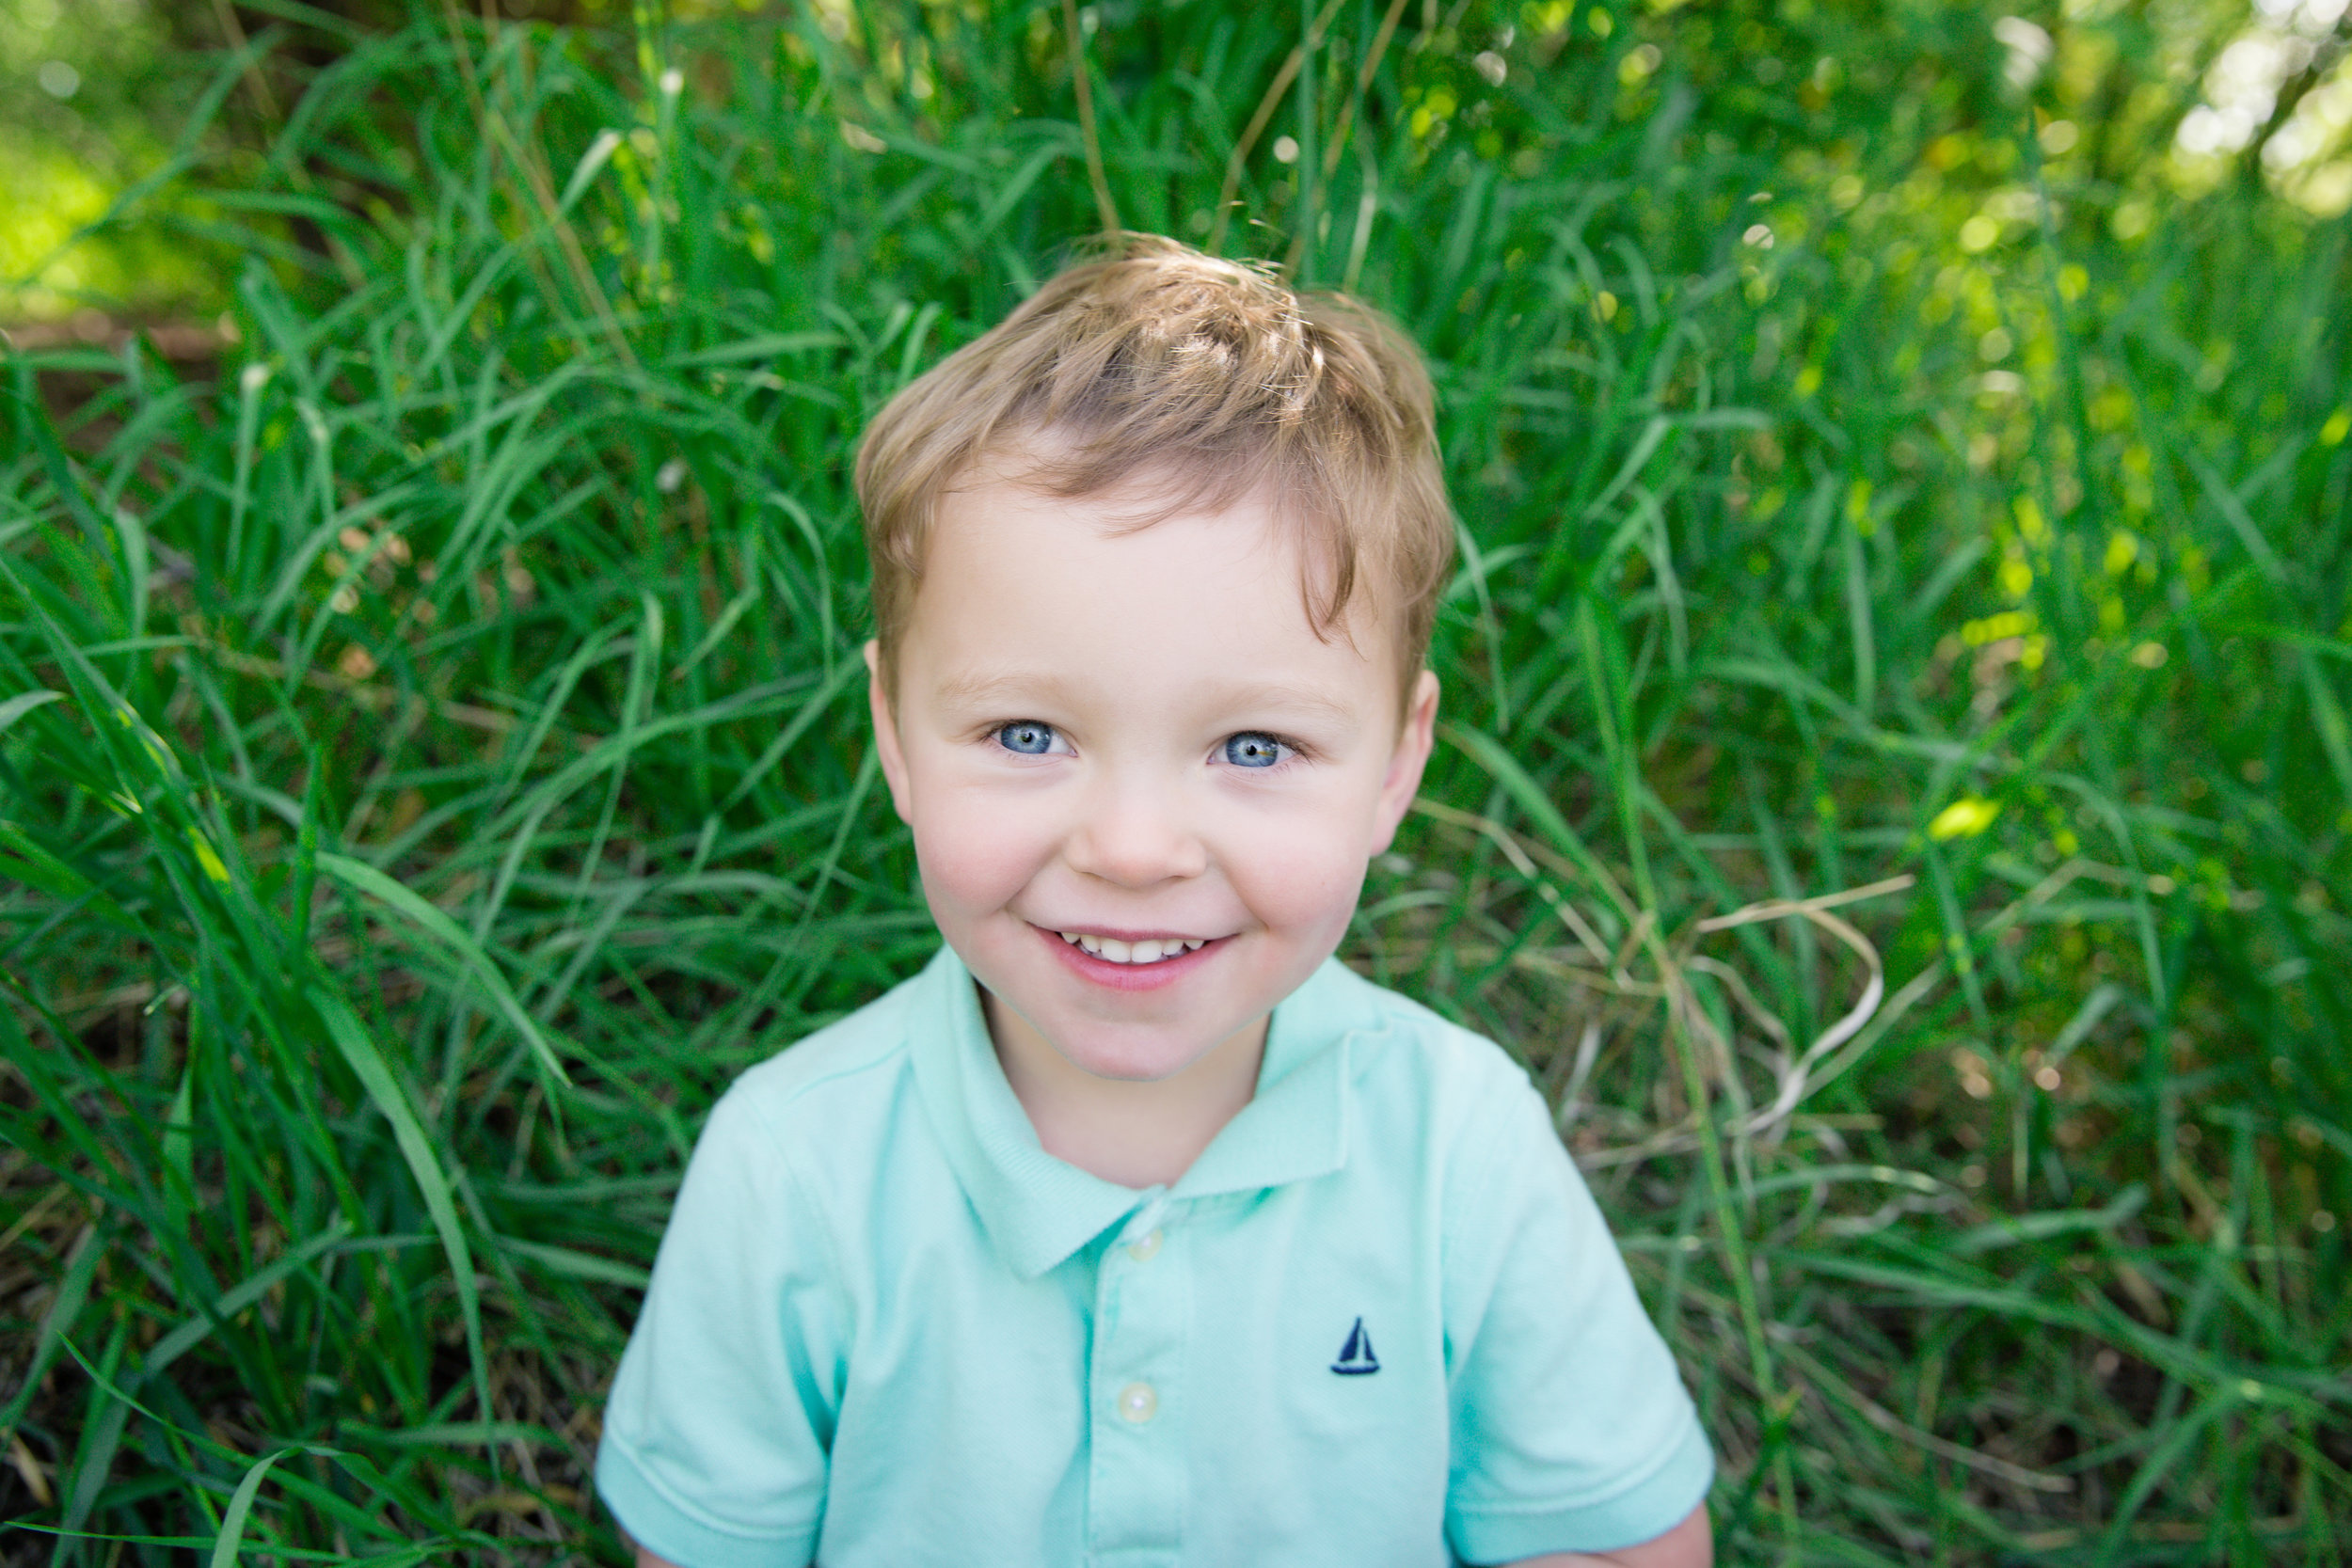 Boy is smiling. Calgary Child photographer. Milashka Photography